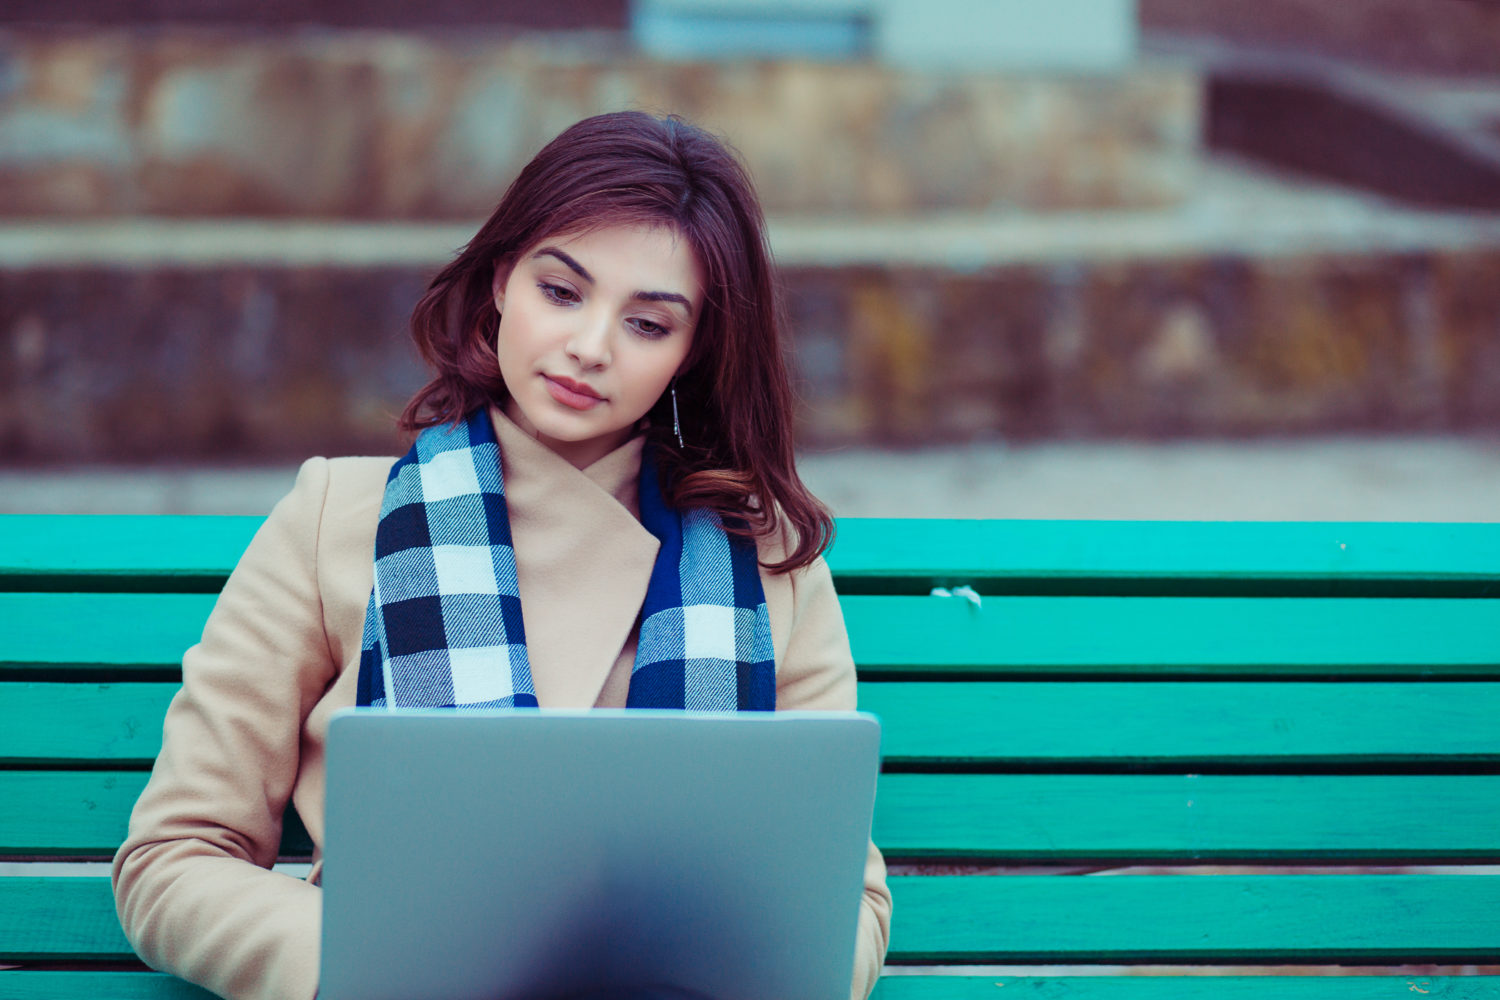 Woman looking at abortion pill information online